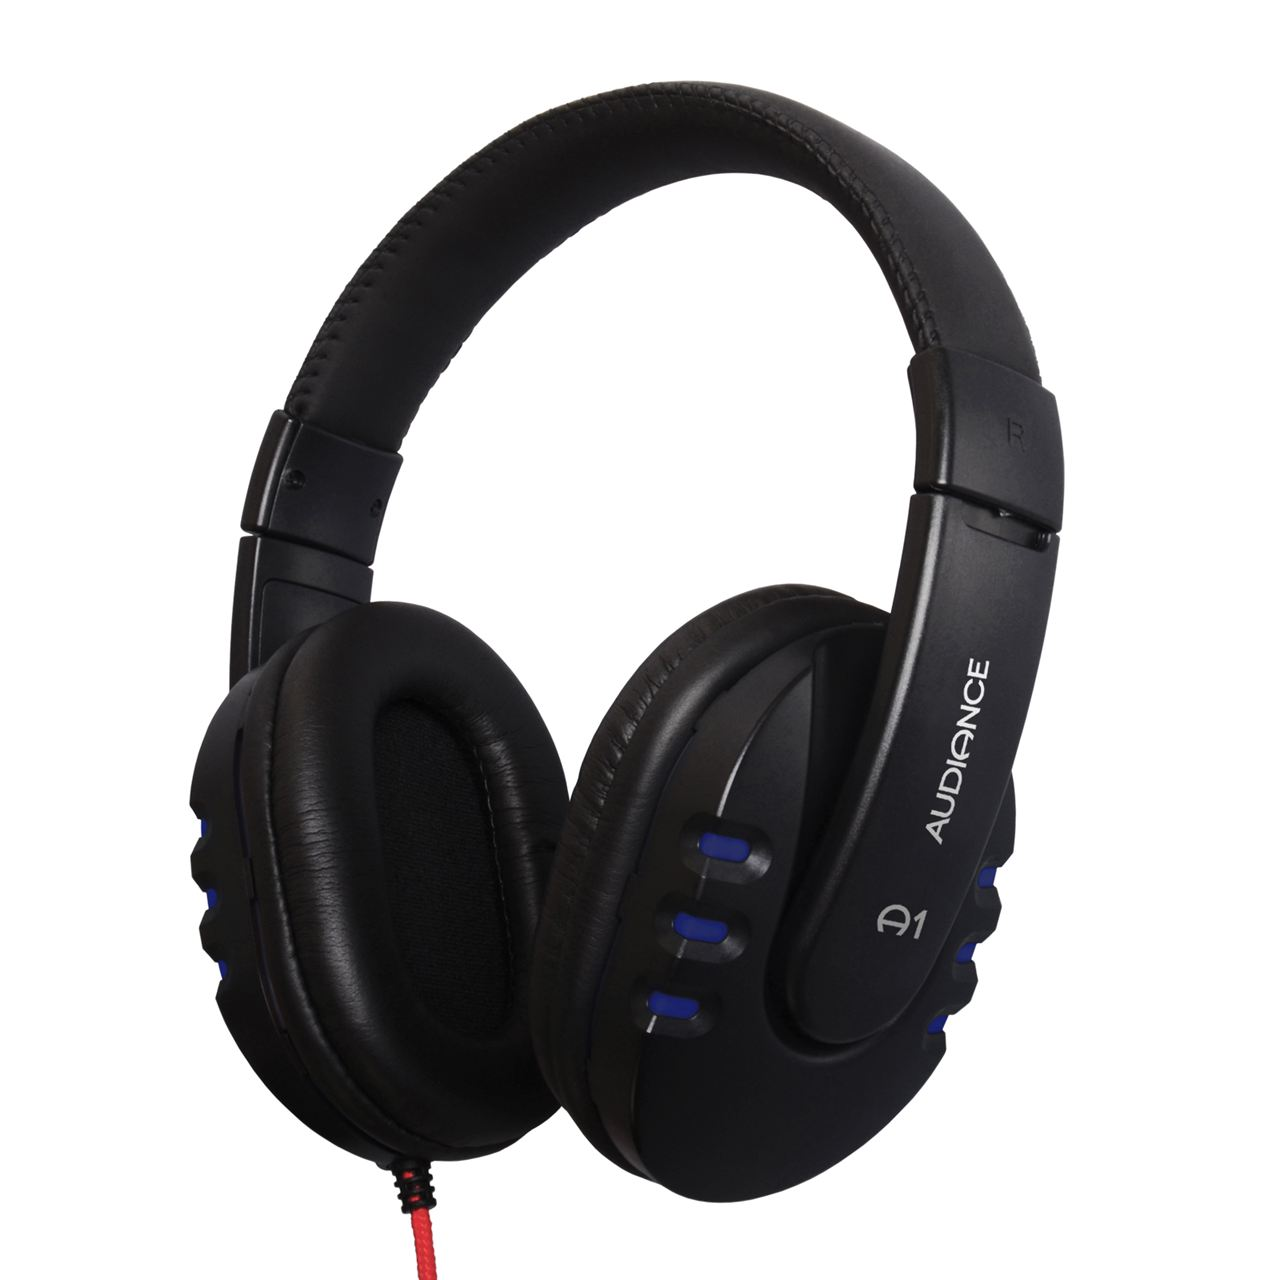 Audiance A1 Over Ear Headphones - Black/Blue